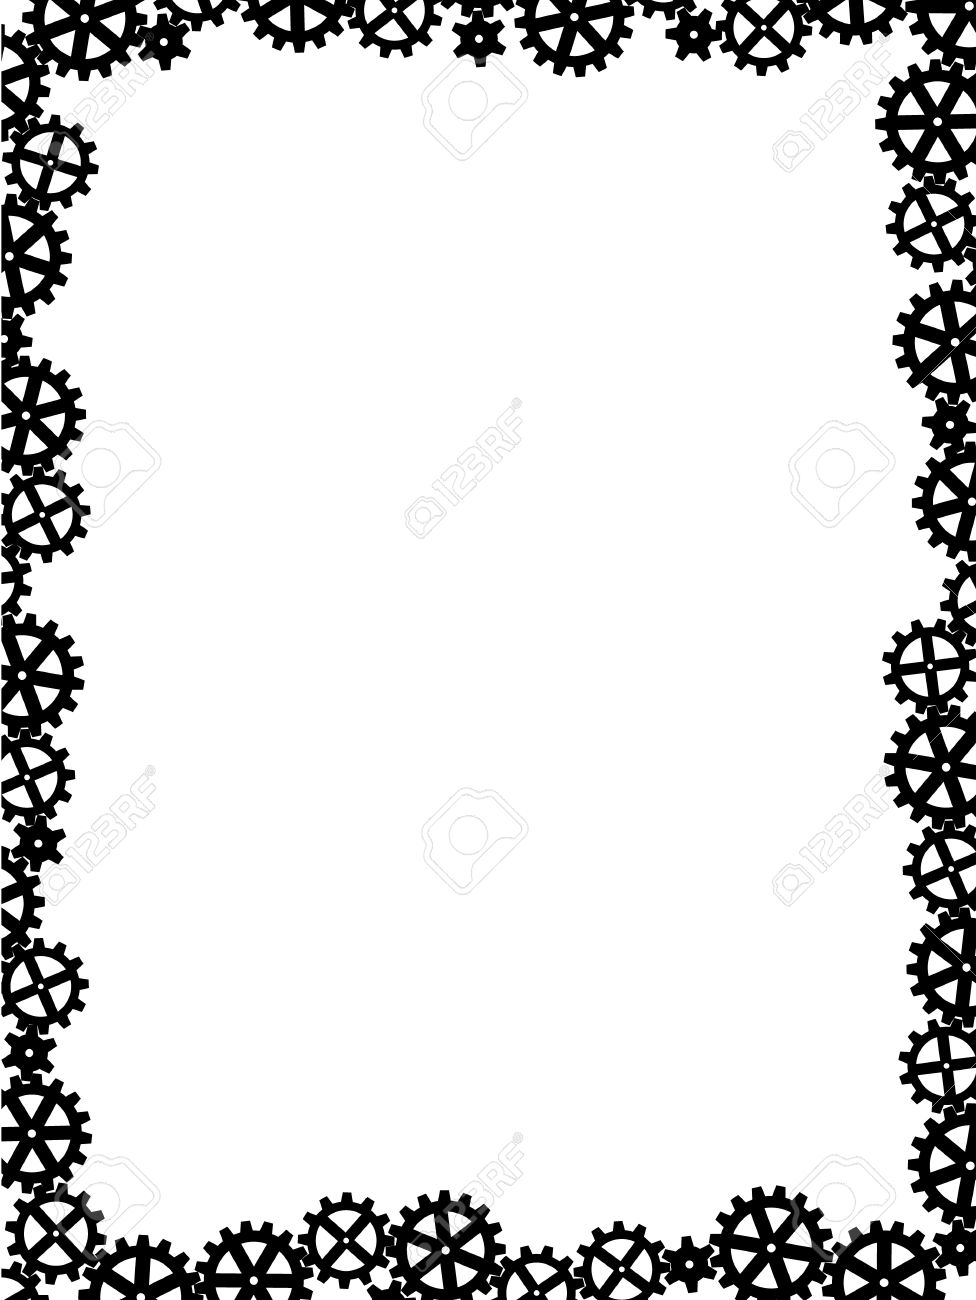 image download Gears border clipart. Portal